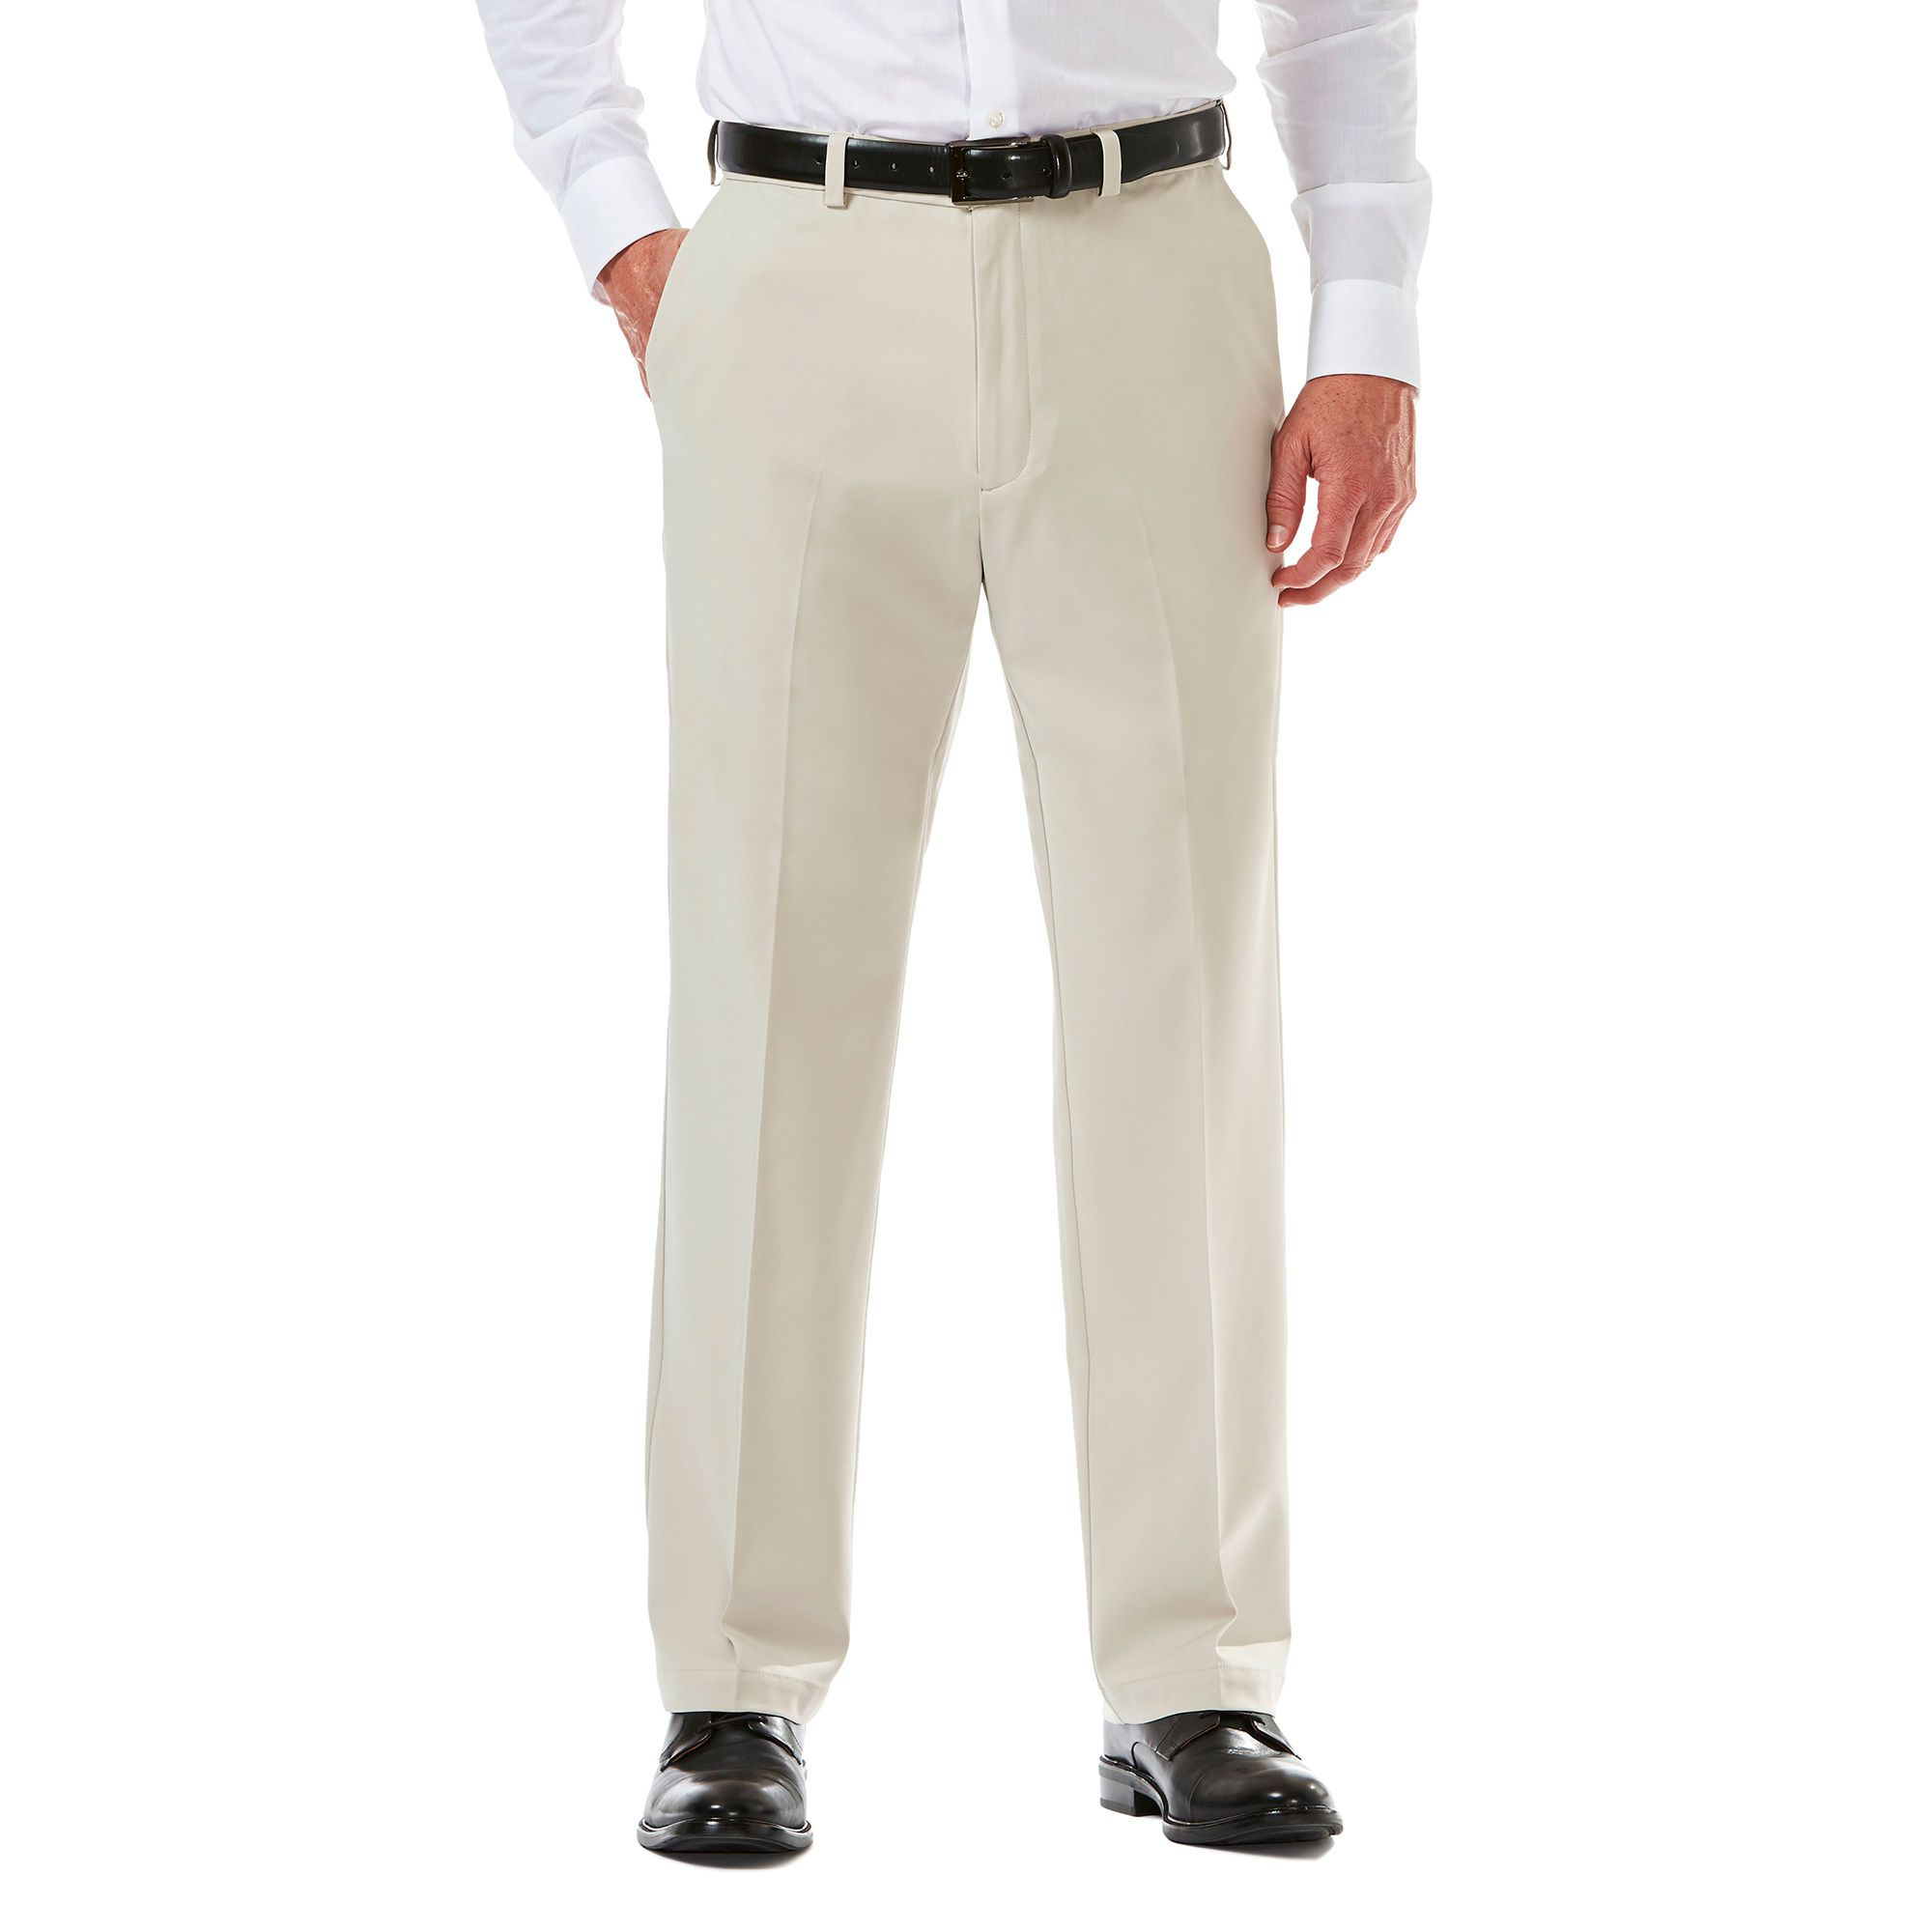 Cool 18 Pro Pant Classic Fit Flat Front Stretch No Iron Haggar Waist Pants Flat Front Pants